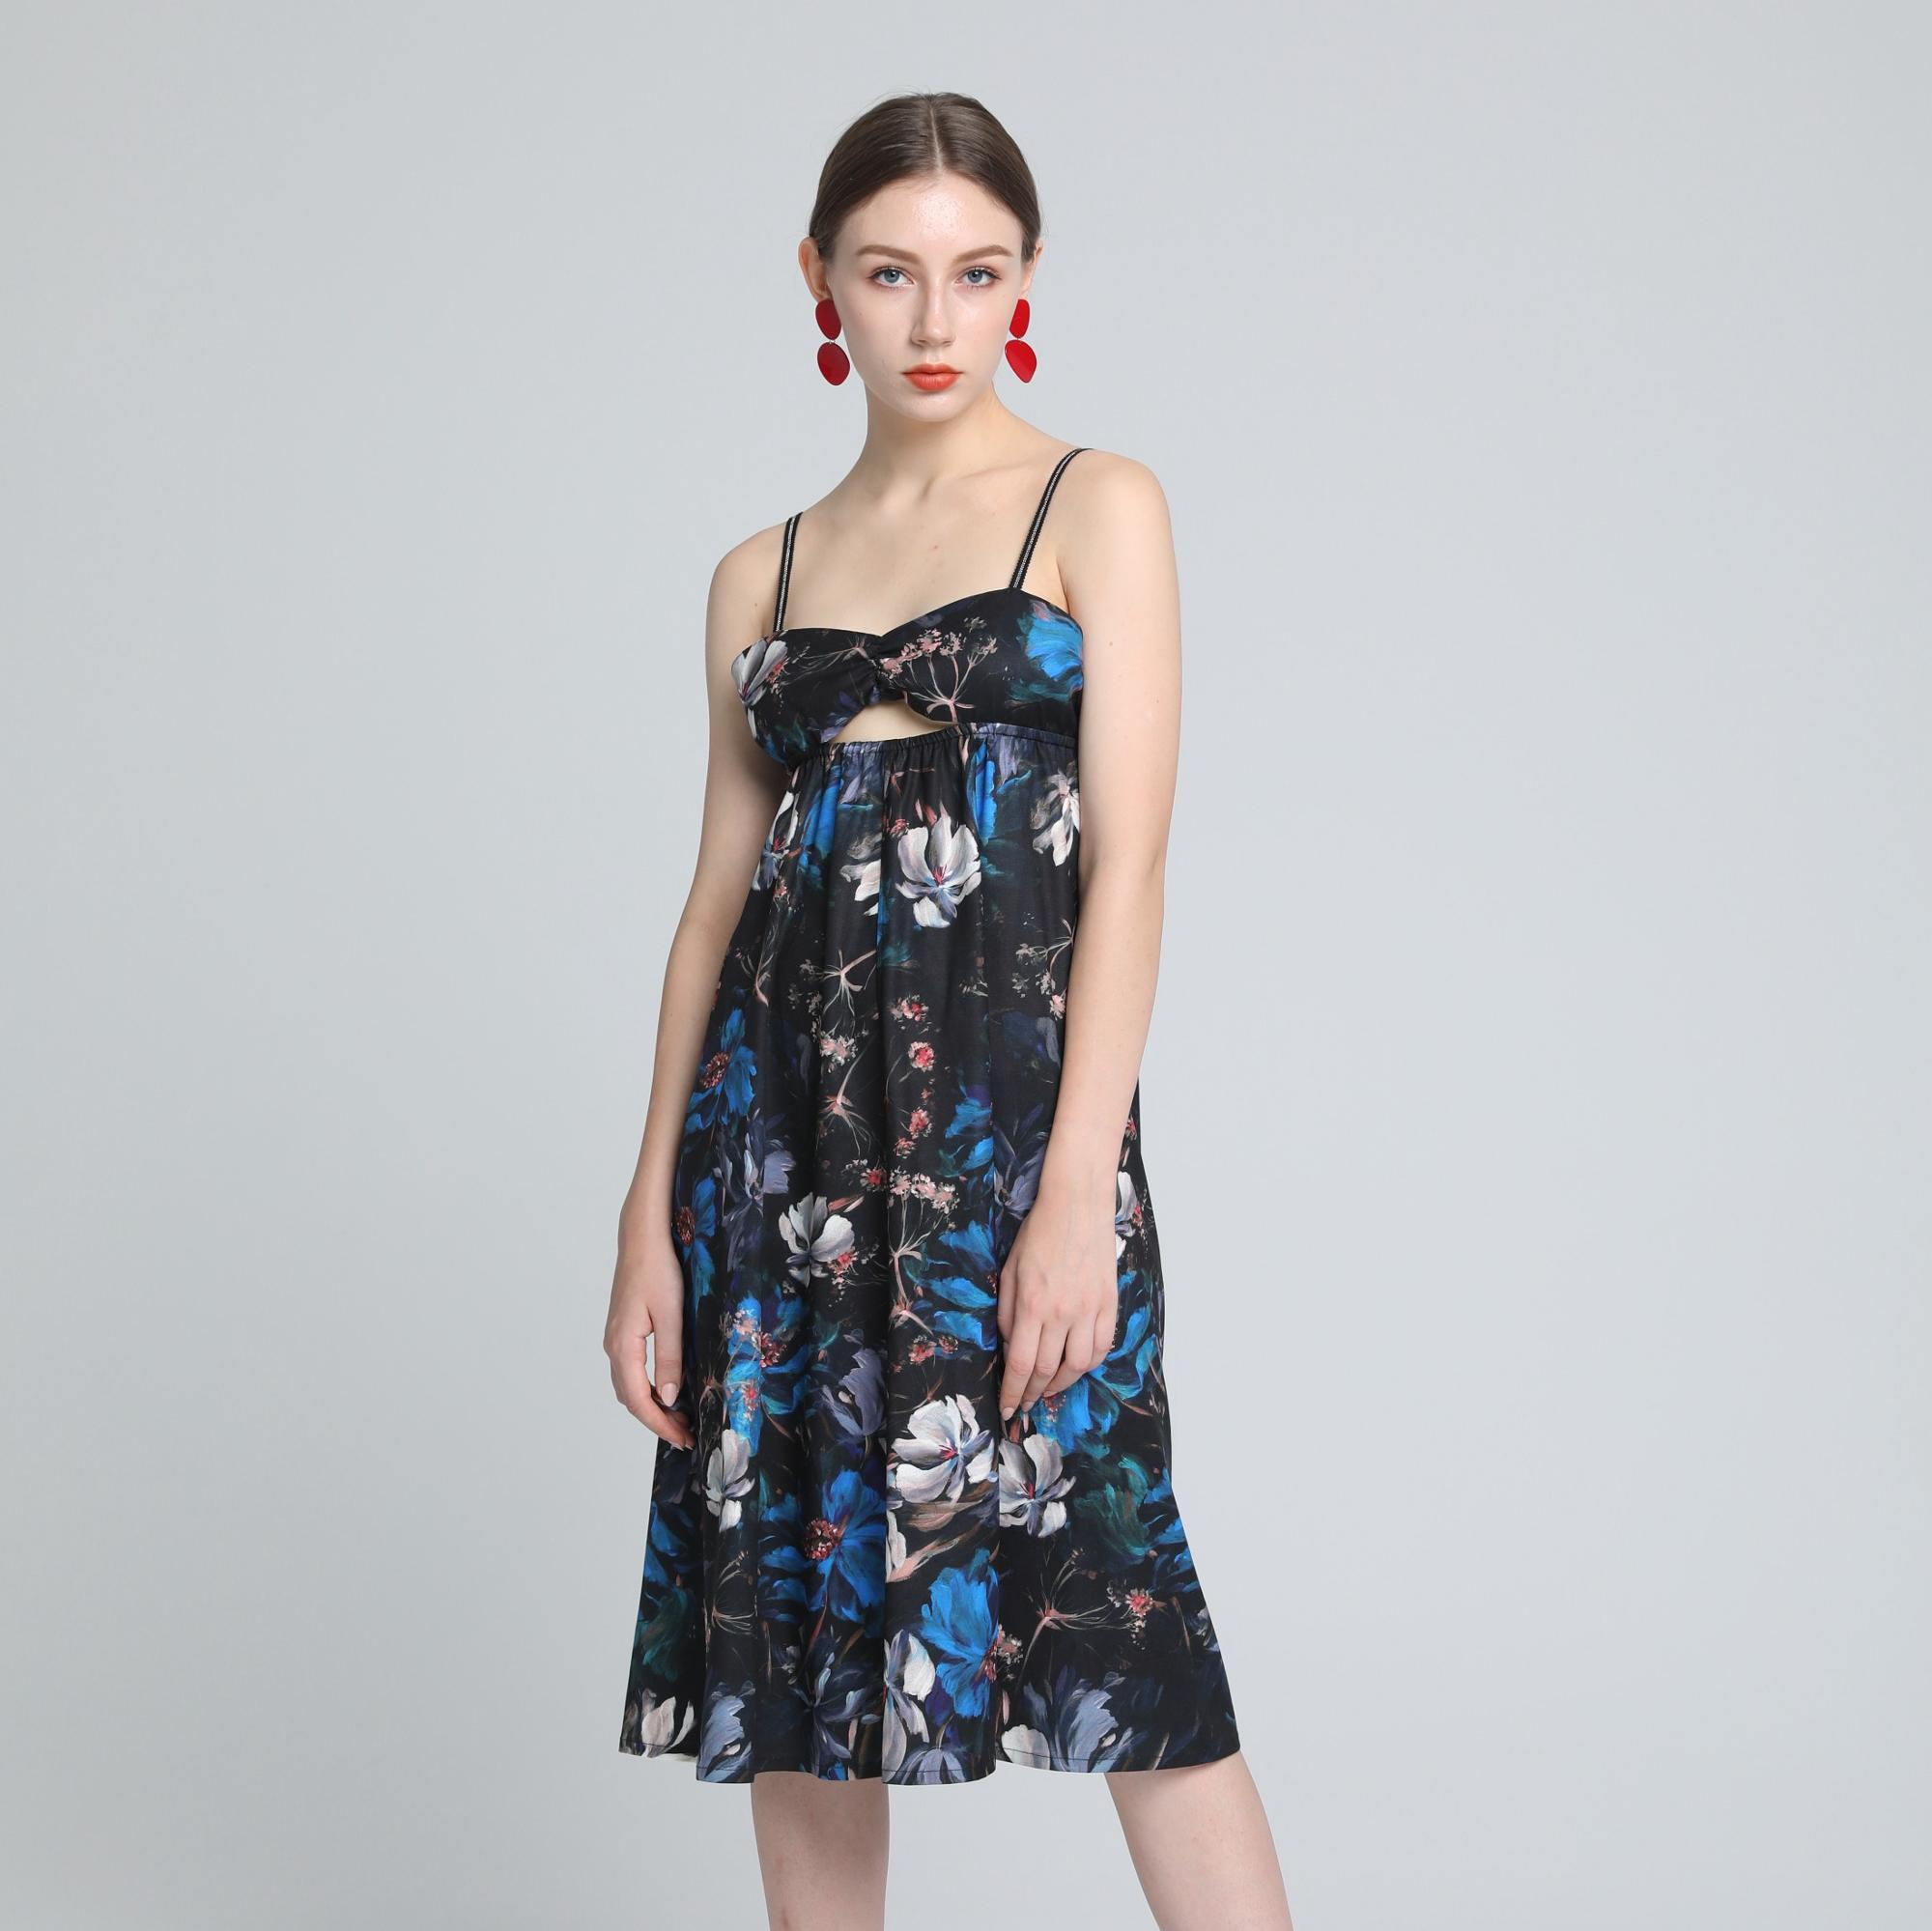 APHACATOP Hot Sale Black Slip Summer Floral Lady Dress